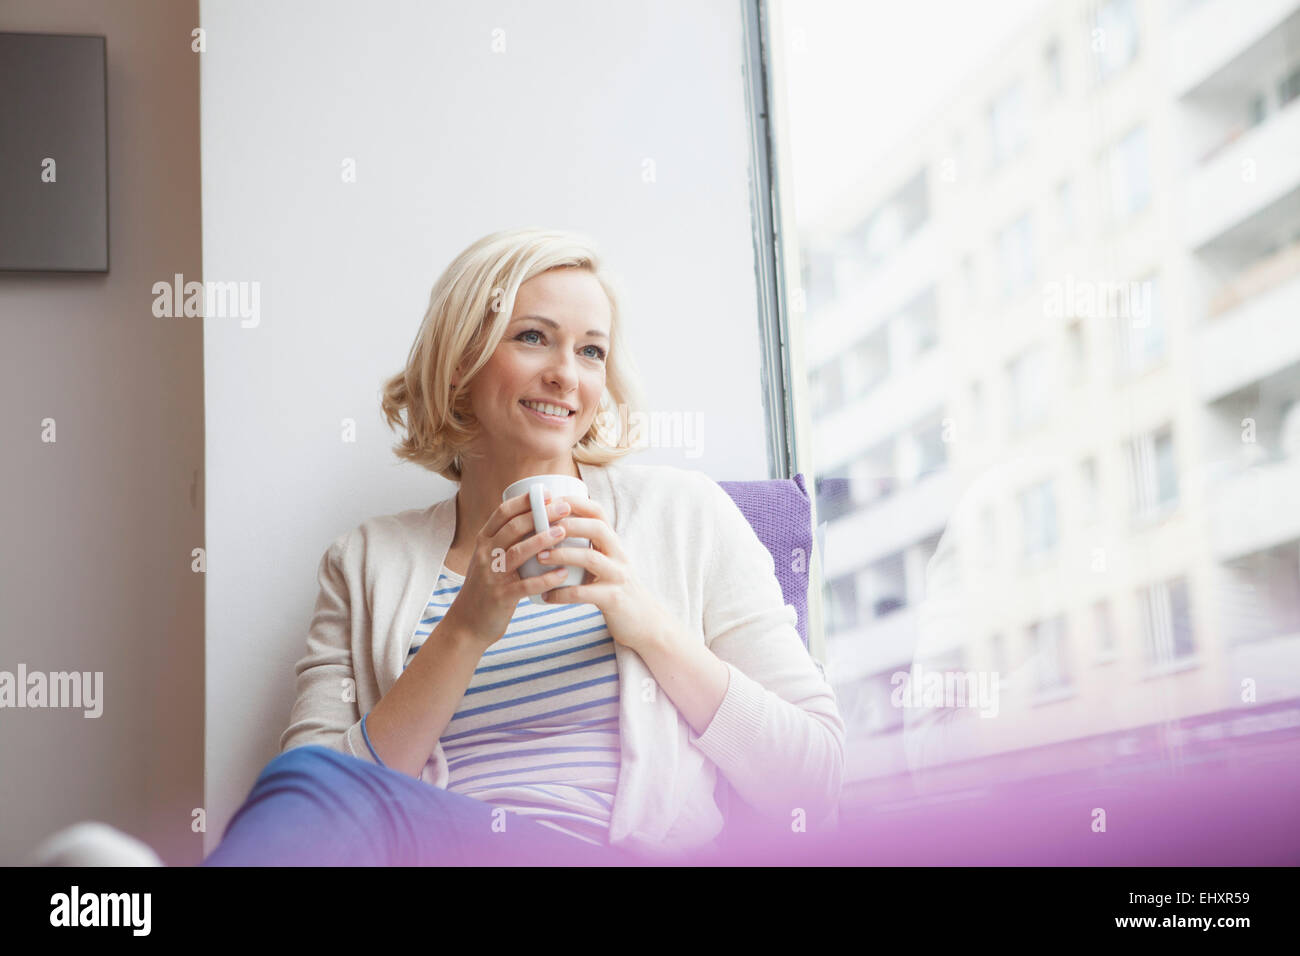 Portrait of smiling woman looking through window - Stock Image